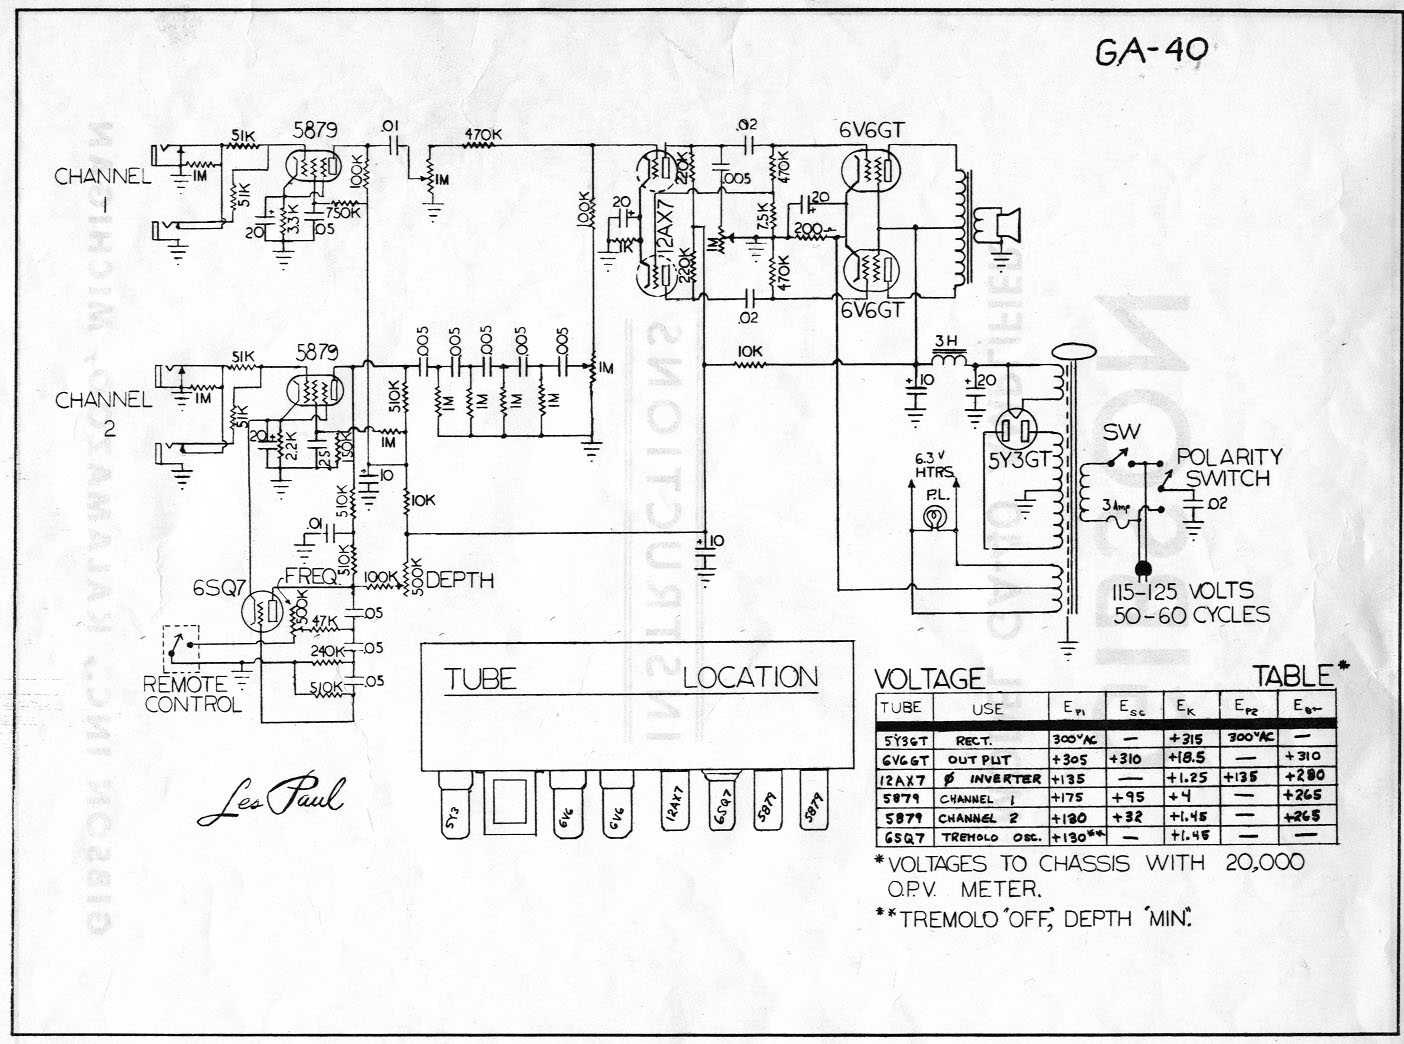 maestro guitar wiring diagram maestro wiring diagrams gibson maestro wiring diagram 1961 chevy pickup wiring harness